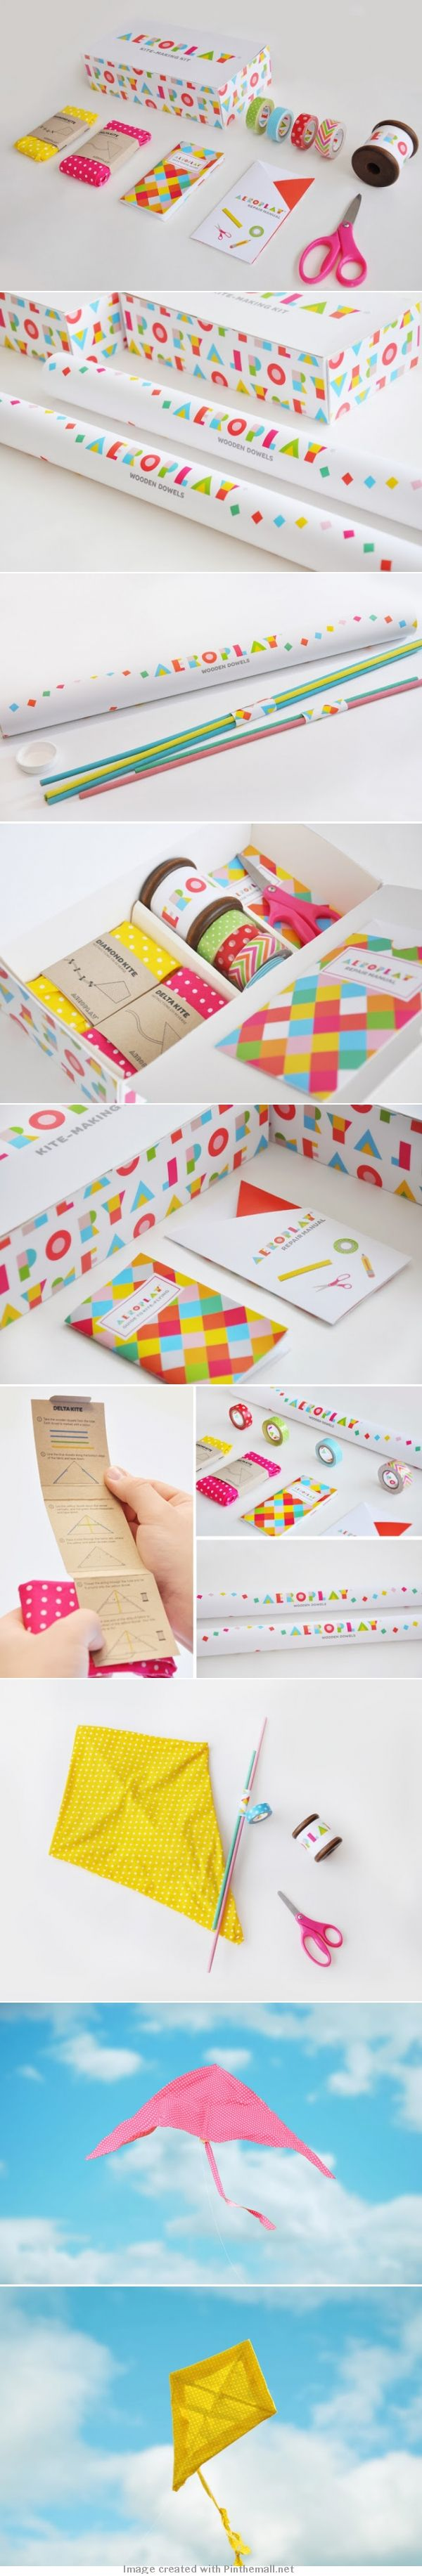 Here you go @Jennifer Milsaps L Yoder Mihailova Aeroplay Kites #packaging PD  -  Torso Vertical Inspirations www.torsovertical.com